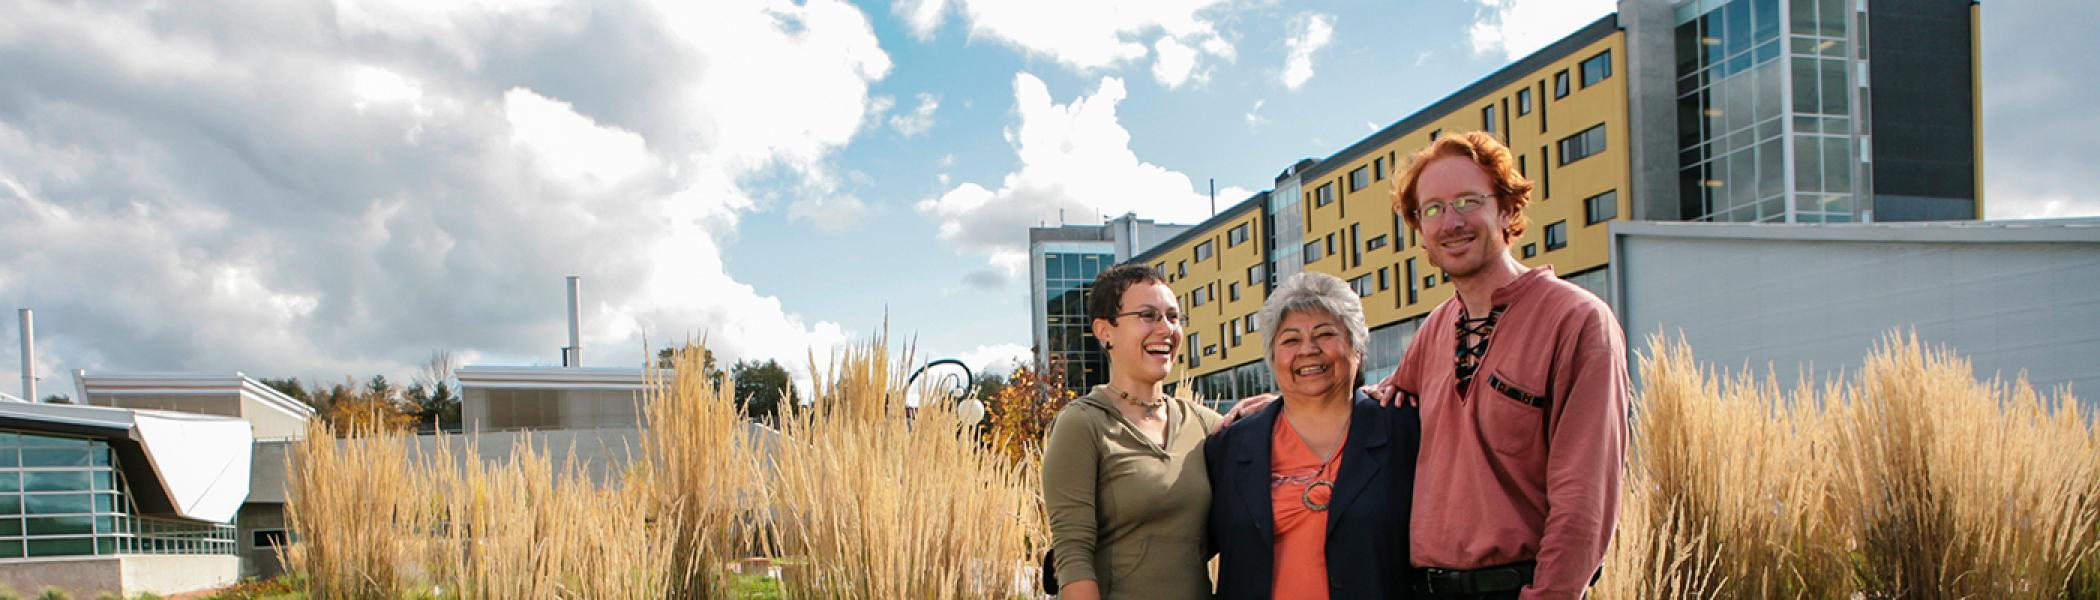 Shirley Williams standing outside in front of Gzowski College with two Ph.D. students